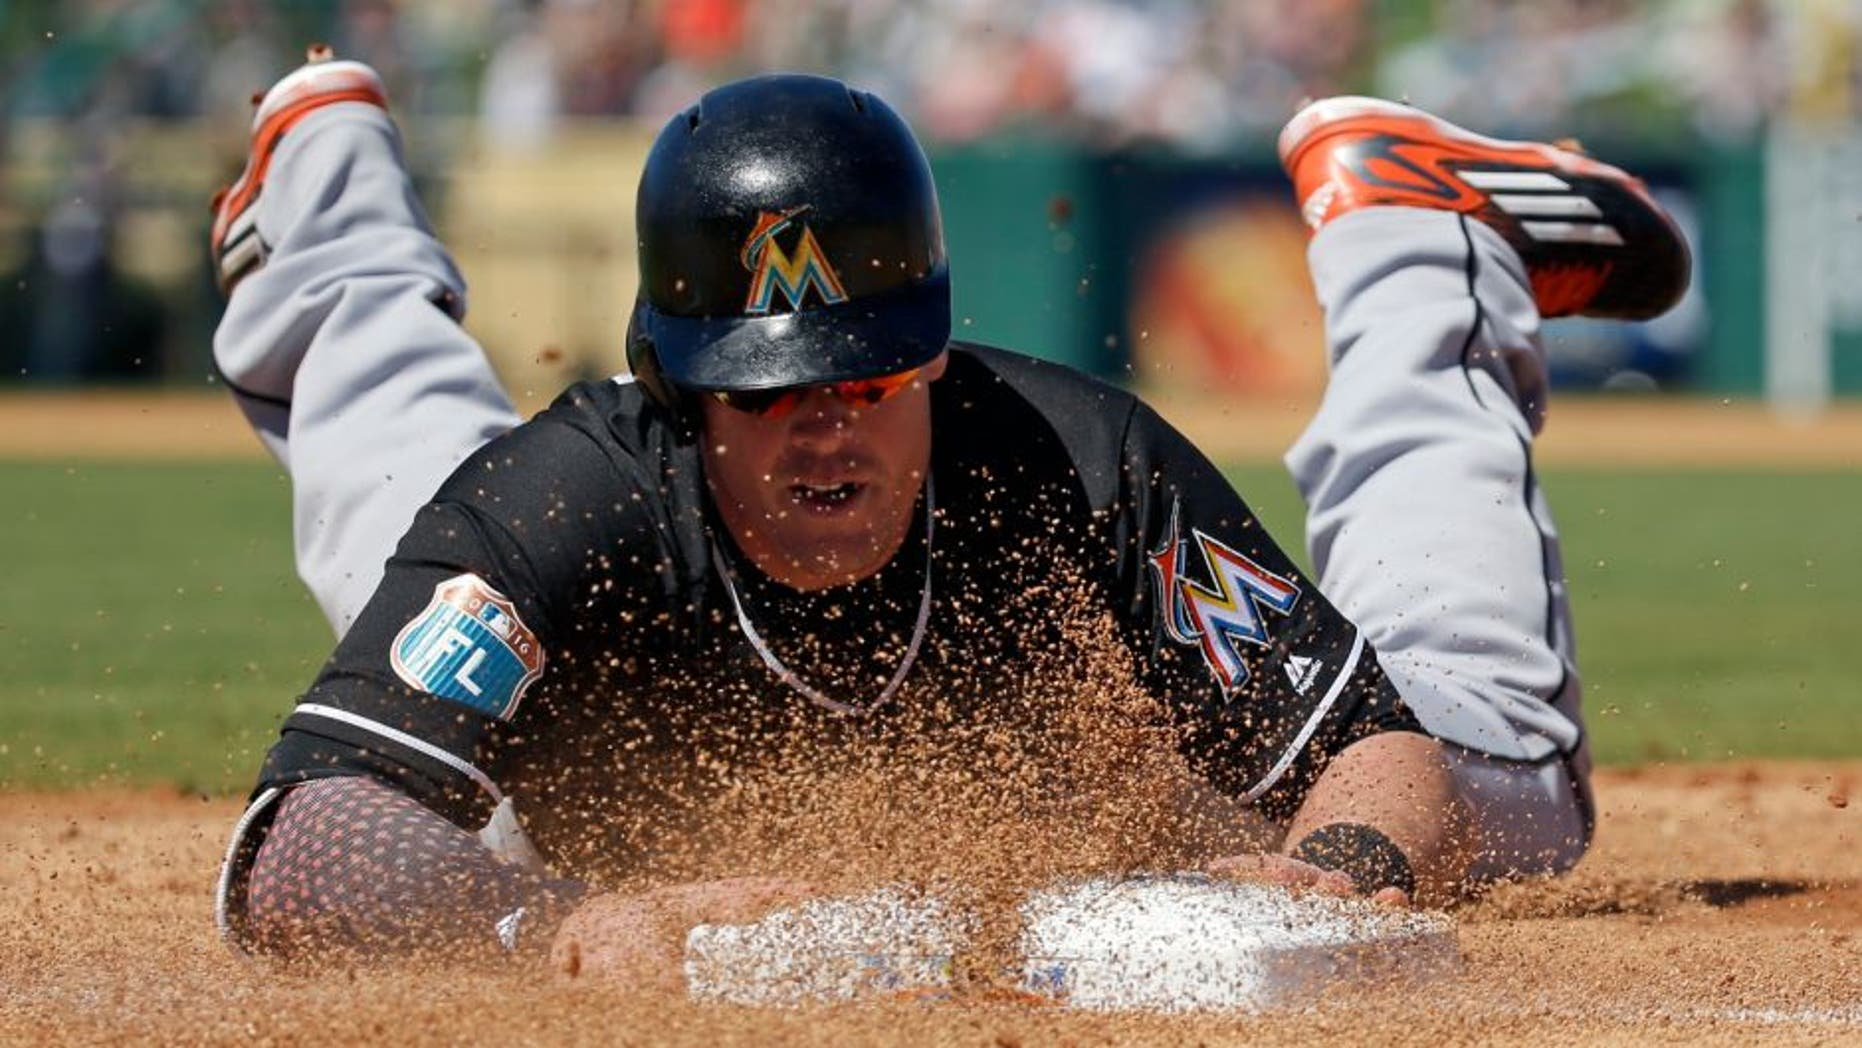 Miami Marlins' Justin Bour slides back to first base after an infield line drive was caught in the first inning of a spring training baseball game against the Detroit Tigers, Sunday, March 6, 2016, in Lakeland, Fla. (AP Photo/John Raoux)